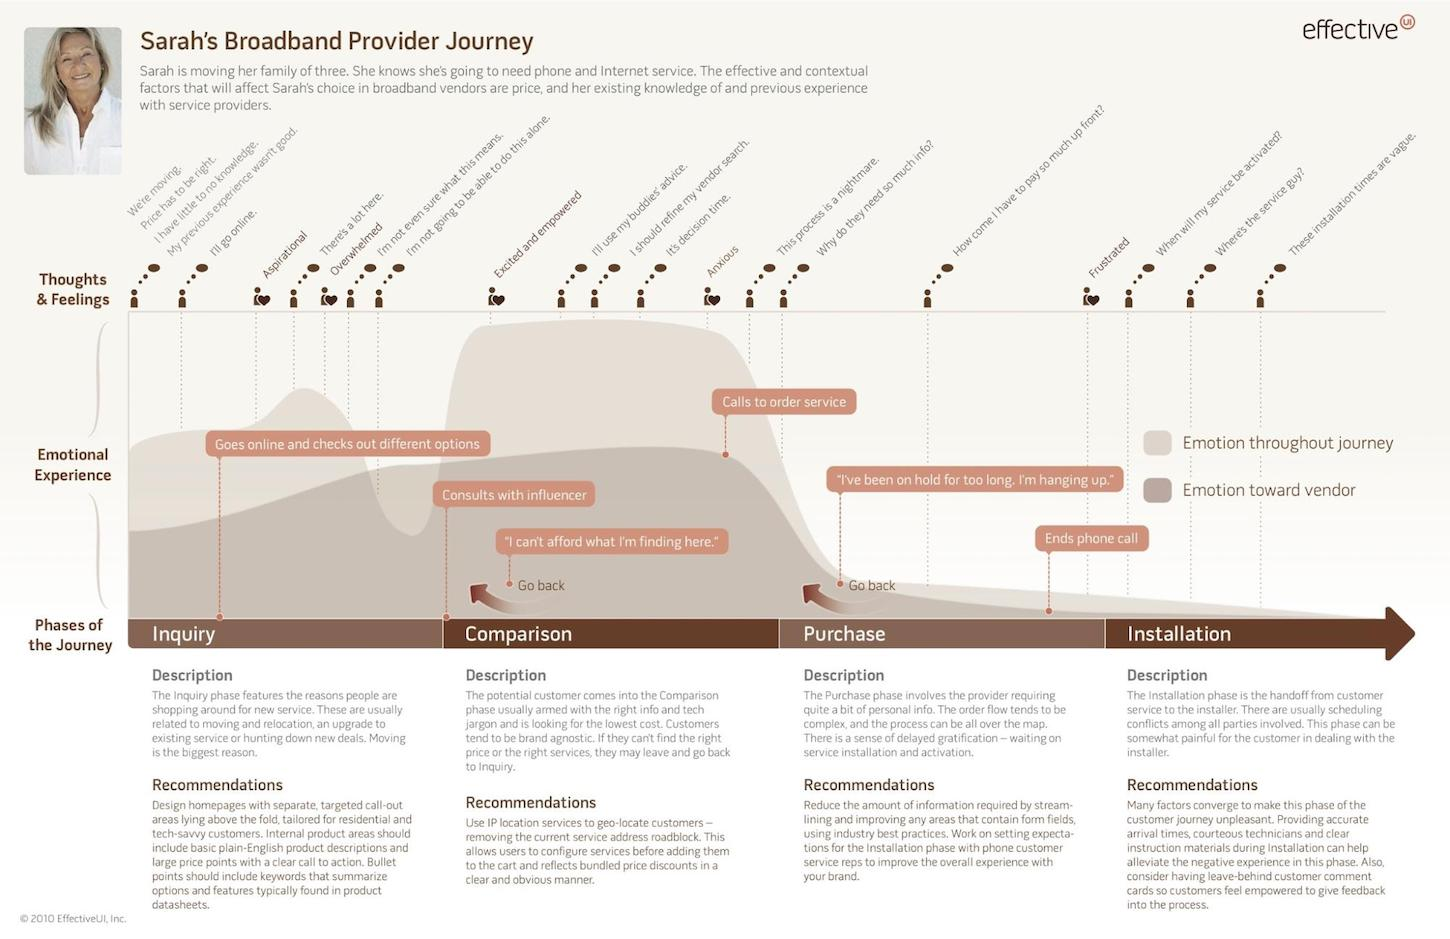 Data Visualization: User Journey Map